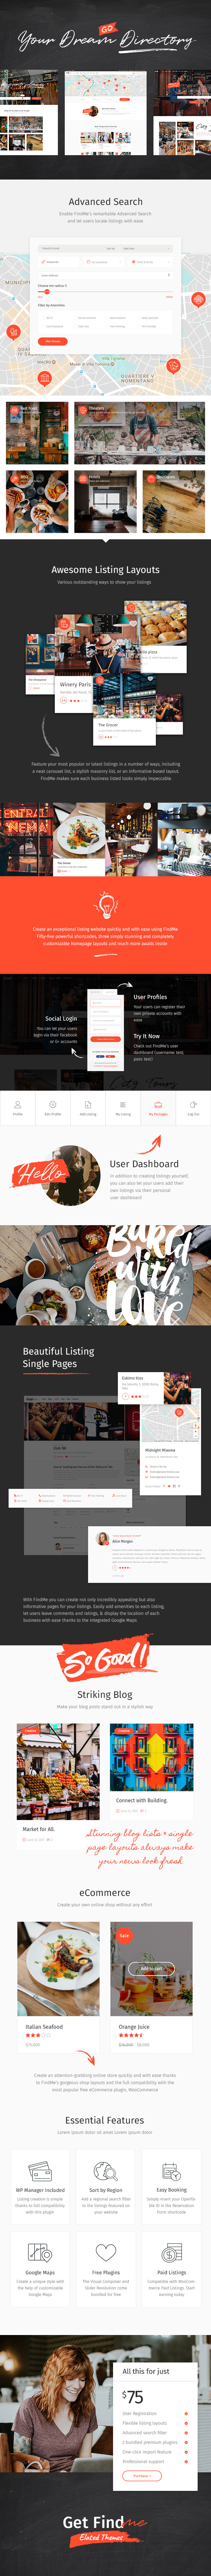 FindMe - Directory Listing Theme - 1